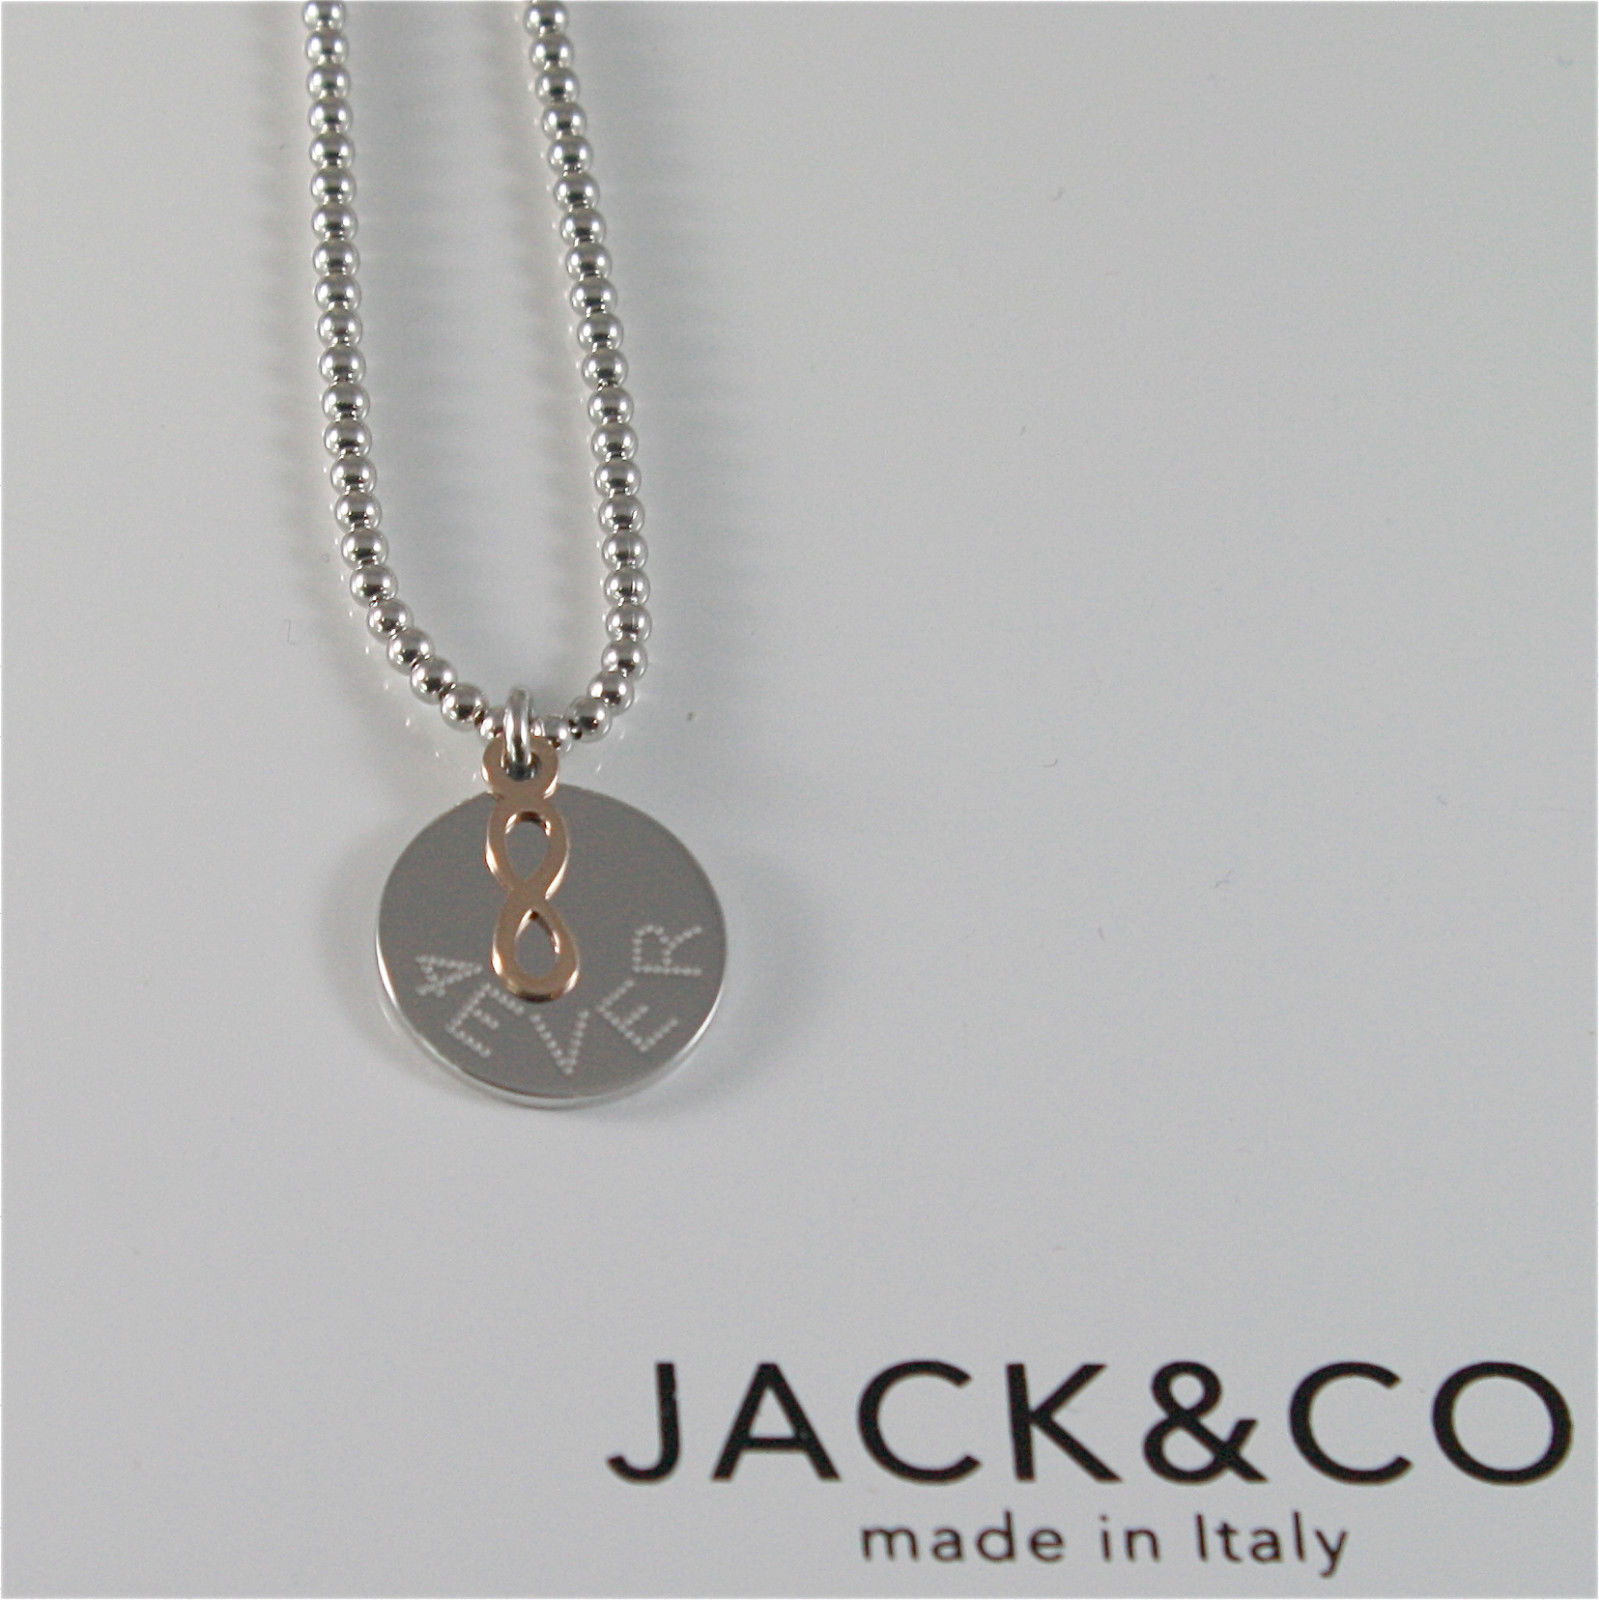 NECKLACE BEAD 925 SILVER JACK&CO WITH INFINITY GOLD PINK 9KT JCN0548